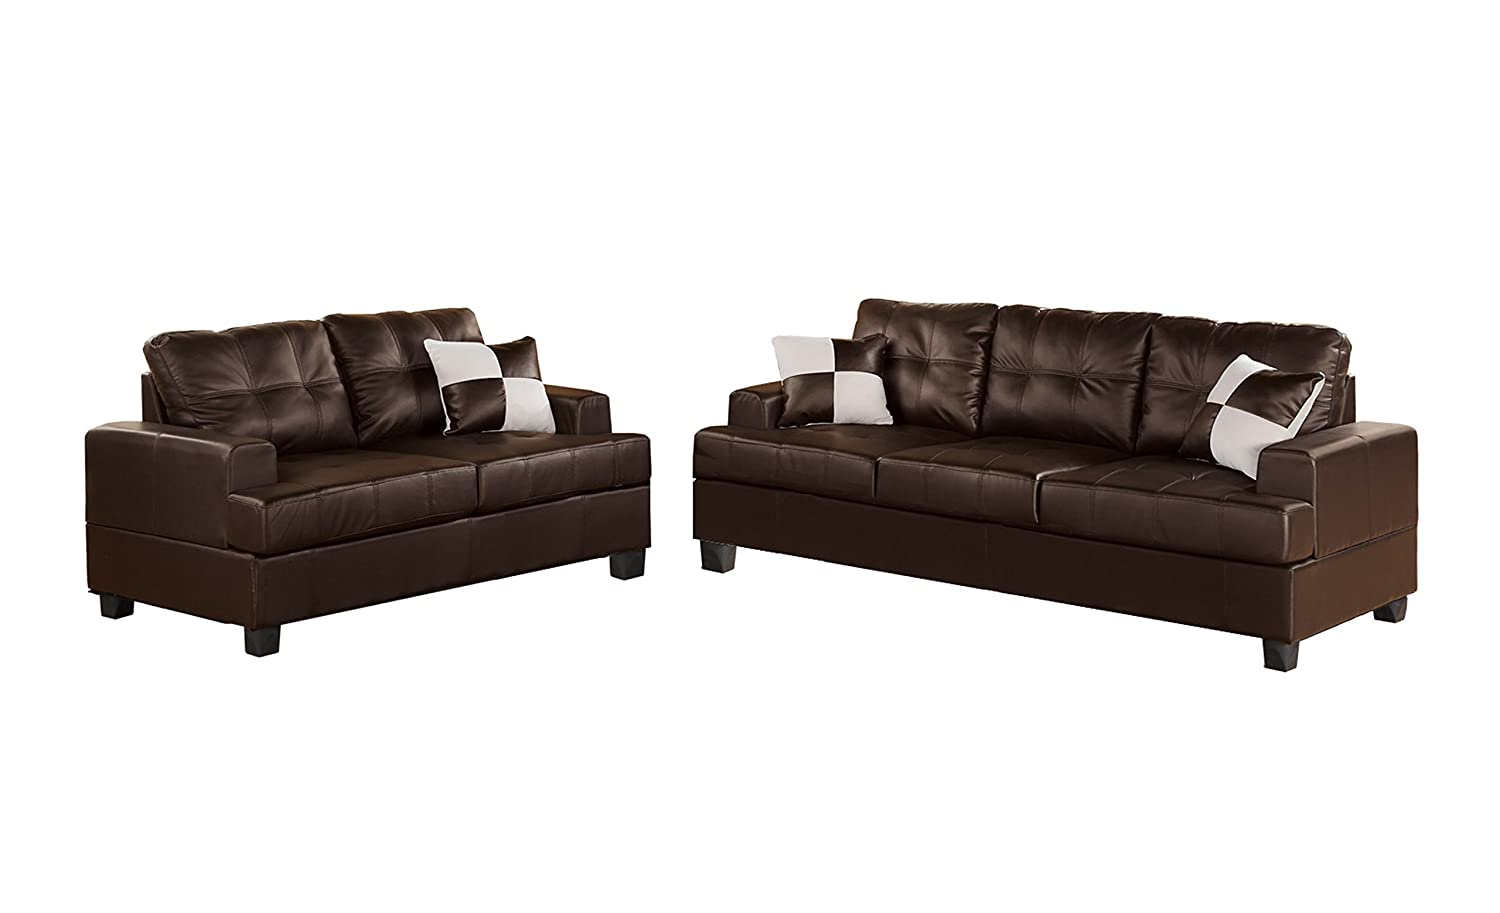 Leather 2 Piece Sofa Loveseat Set Accent Pillows Living Room Modern Furniture Ebay